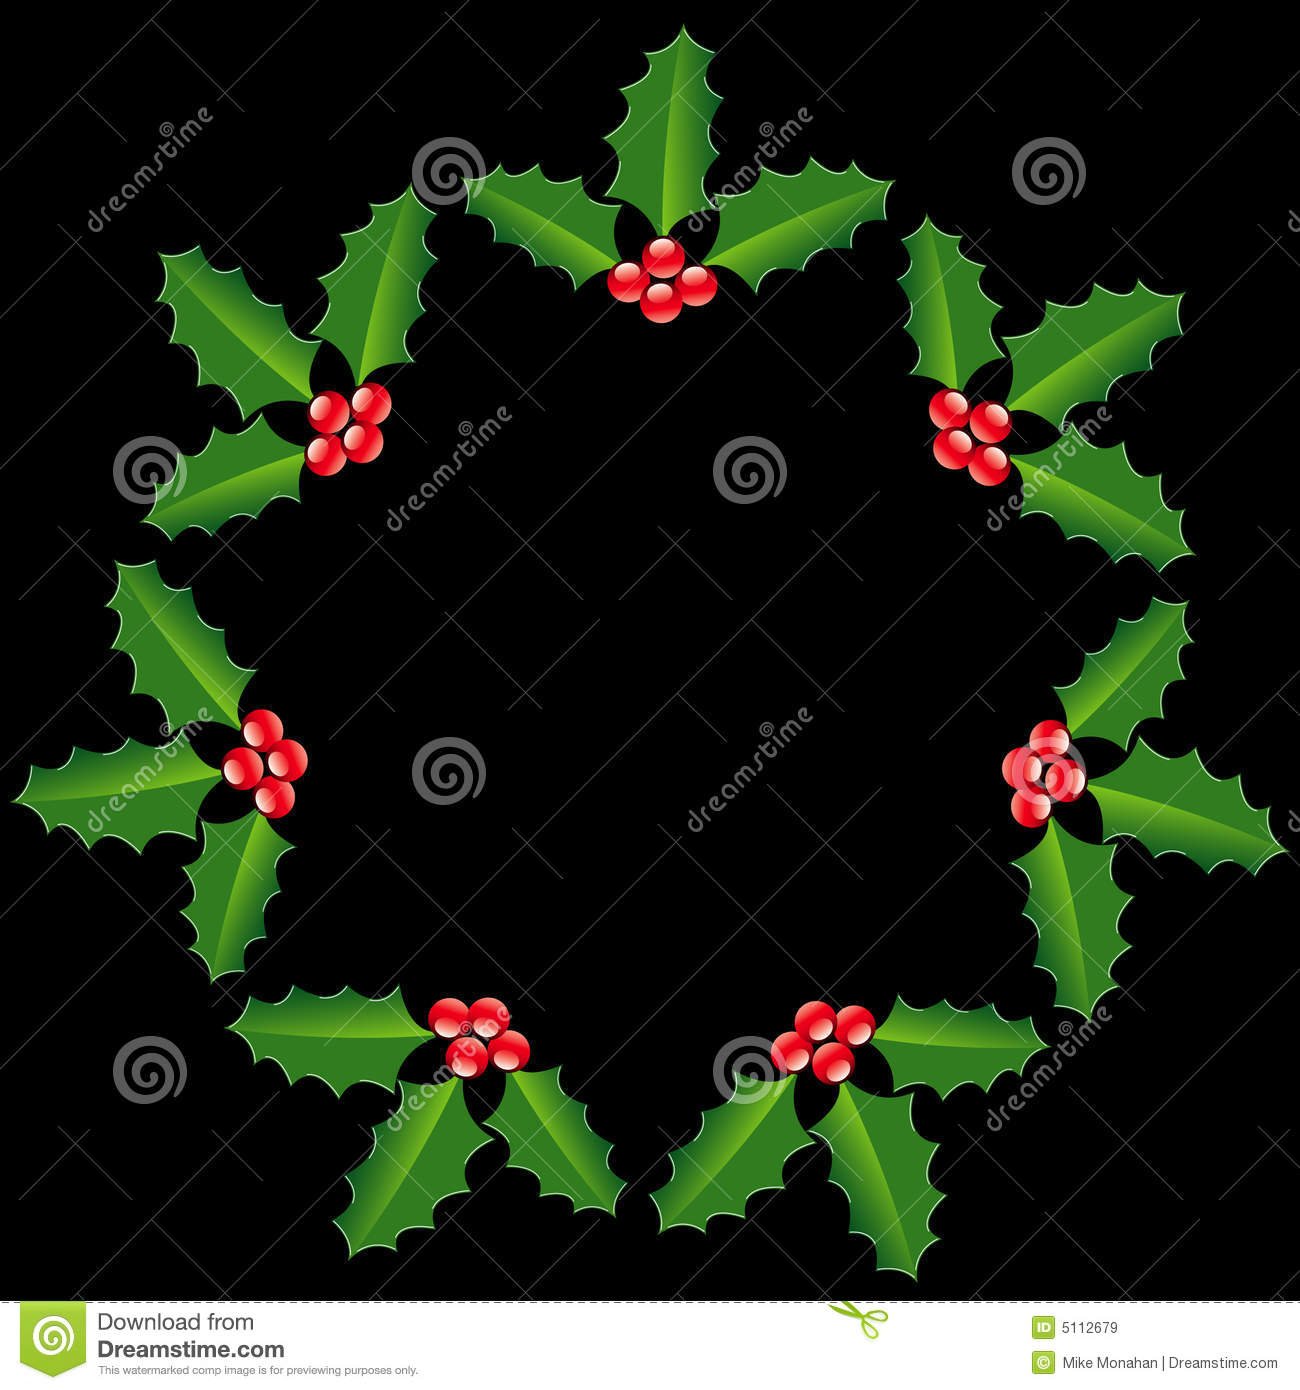 mistletoe christian personals Would you kiss under the mistletoe mistletoe kiss discussion in 'singles (only) christian forums.